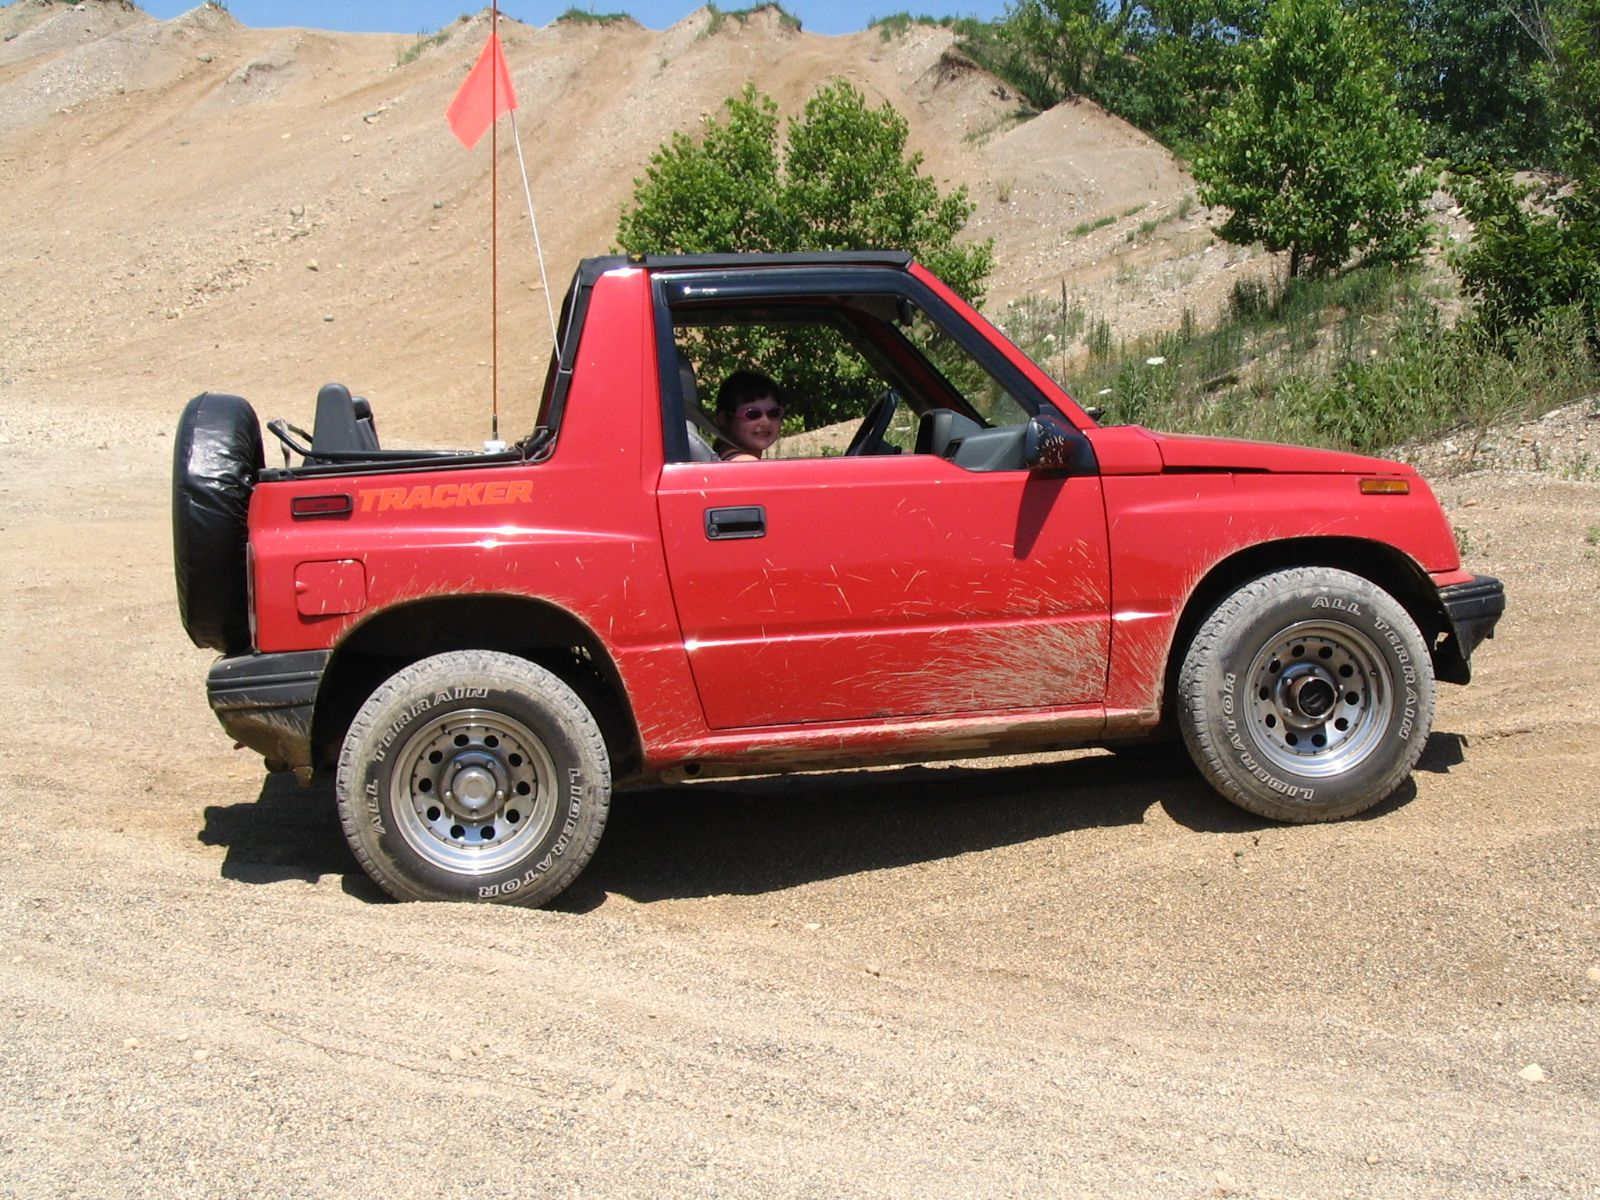 1991 Geo Tracker 2 Dr STD 4WD Convertible | Geo | Cars ...